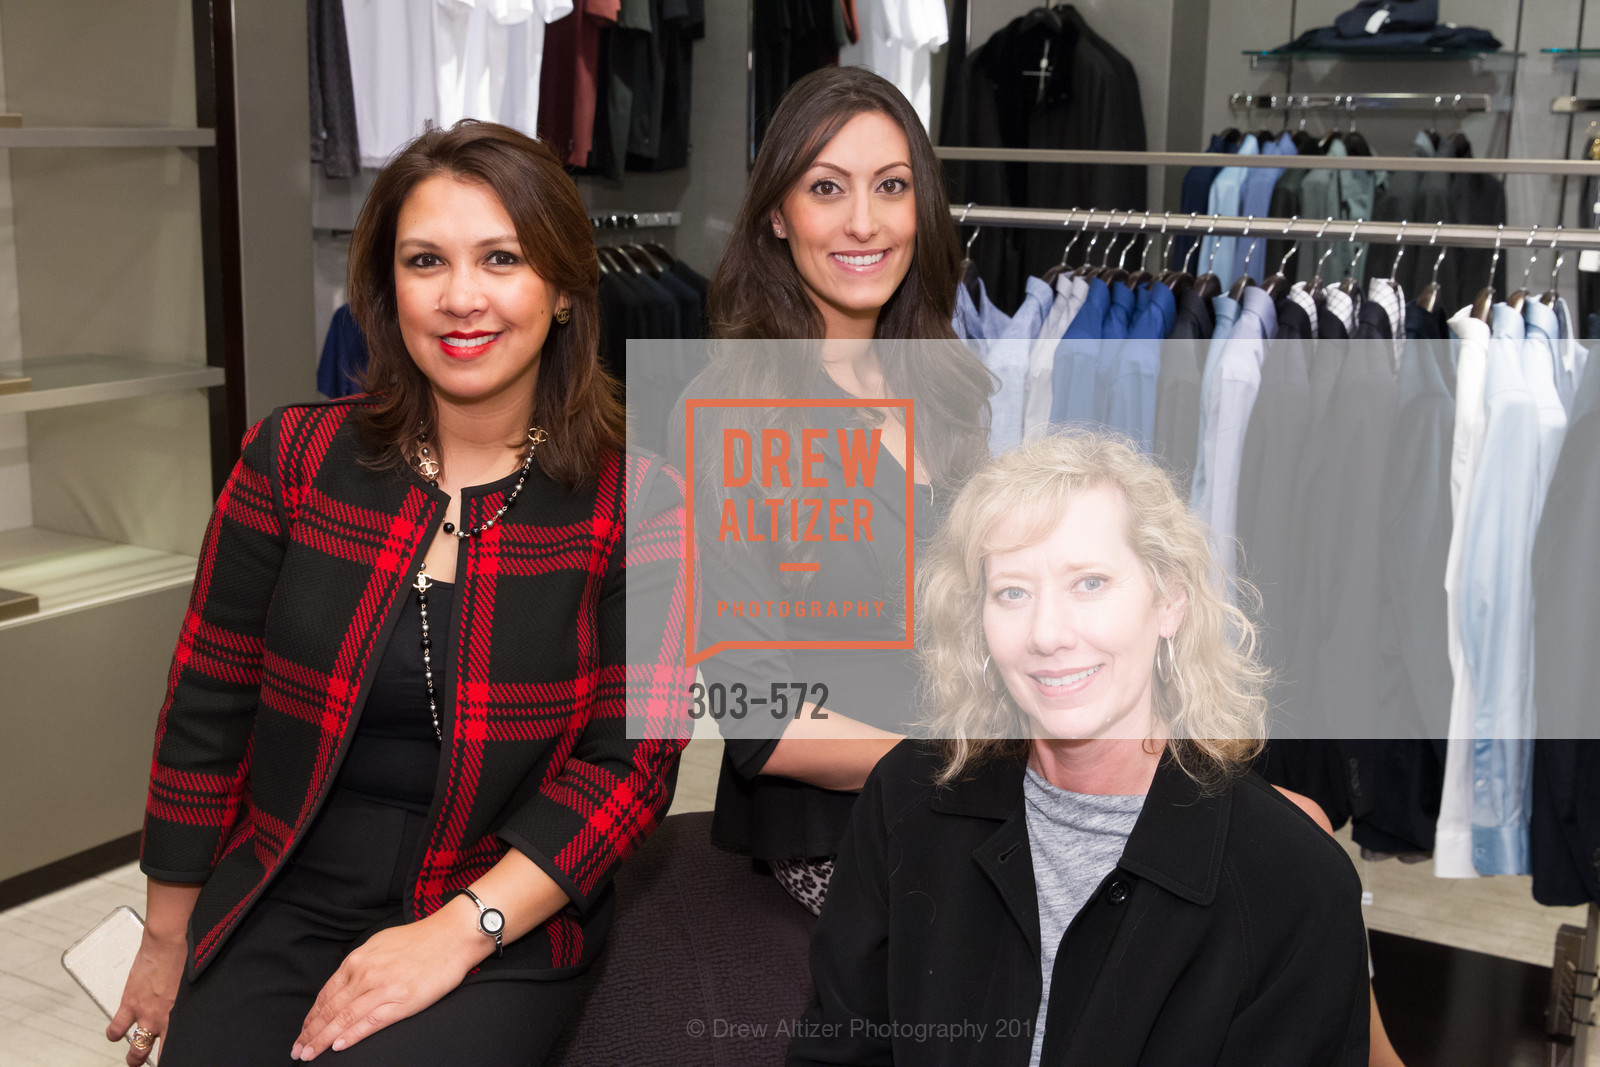 Julie Agbulos, Lori Schlindwein, Diane Lively, Neiman Marcus Walnut Creek welcomes neighbors ROOFTOP and Teleferic Barcelona, Neiman Marcus. 1000 South Main Street, November 20th, 2015,Drew Altizer, Drew Altizer Photography, full-service agency, private events, San Francisco photographer, photographer california